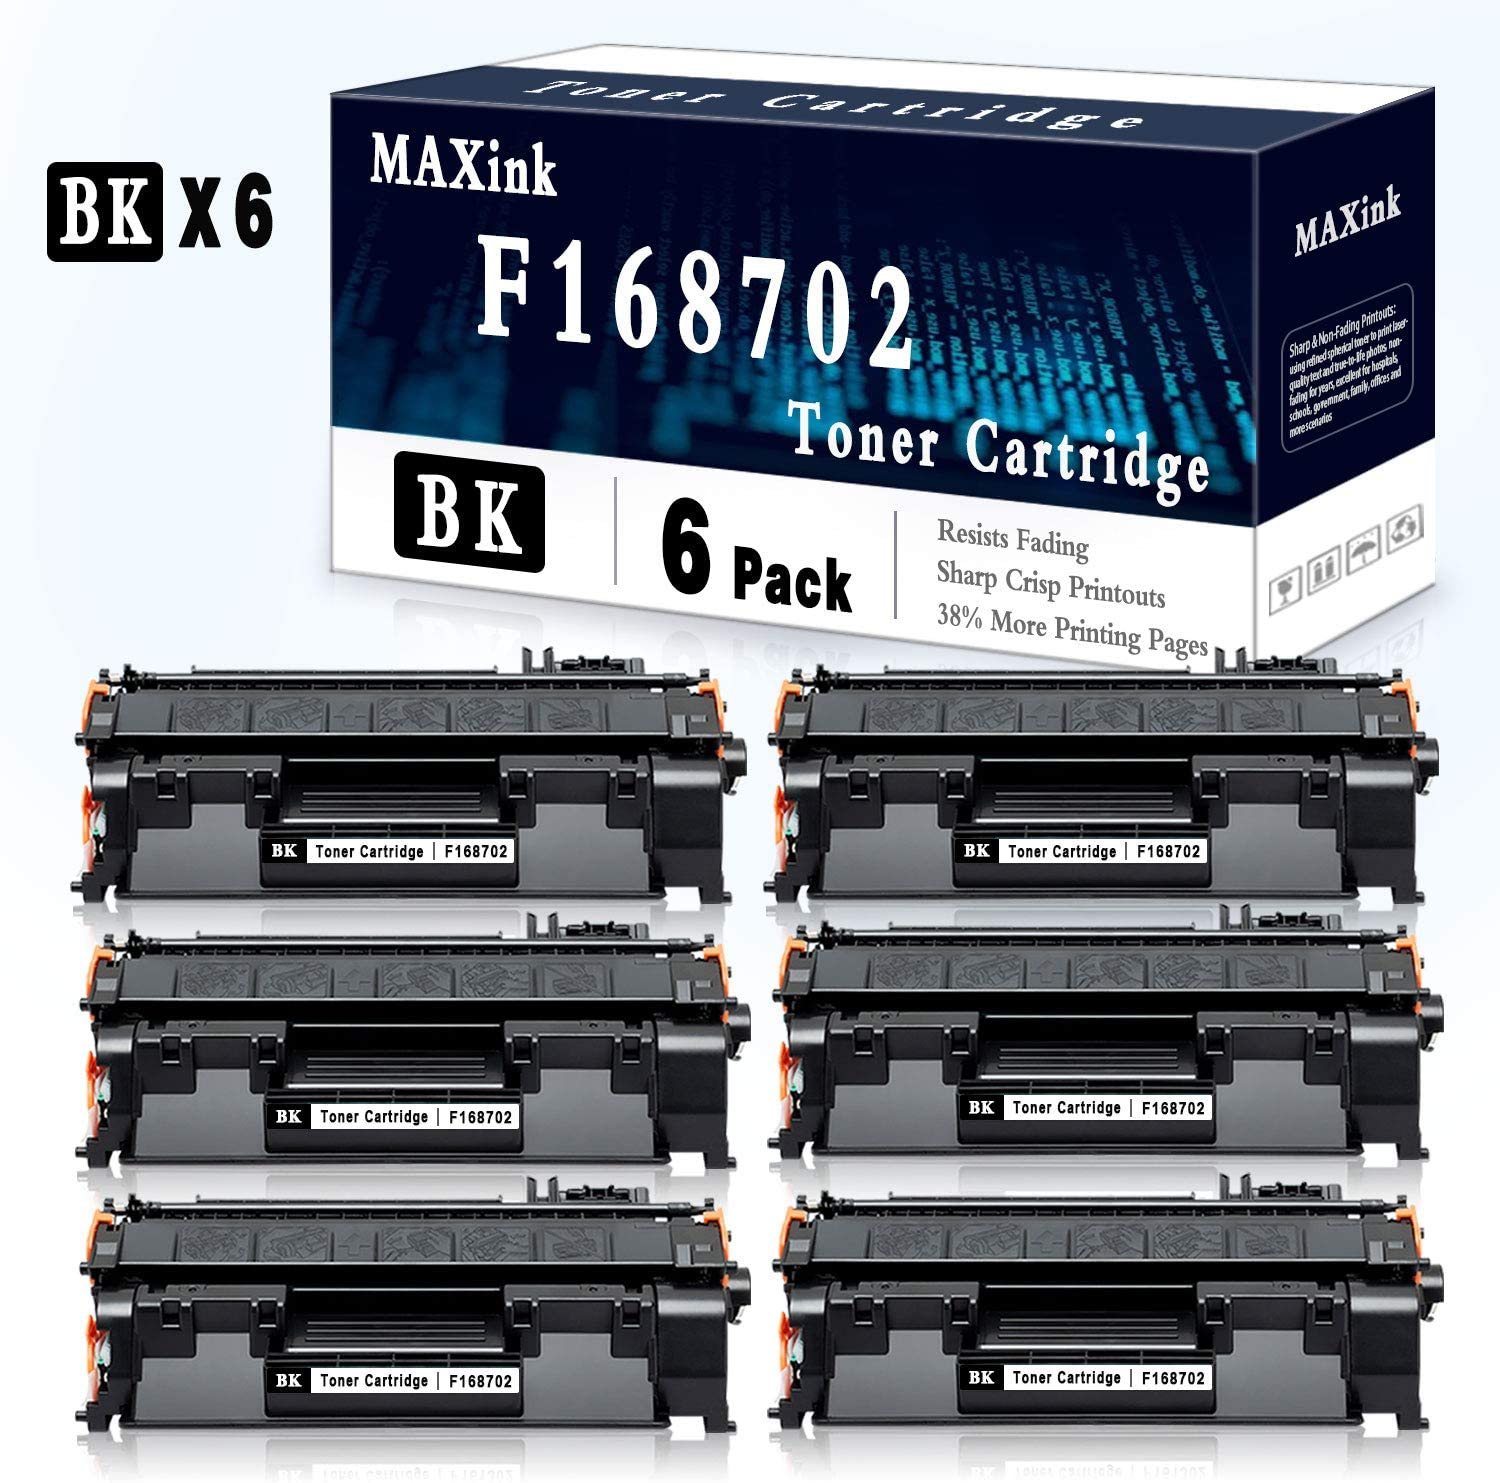 6 Pack Black Toner Cartridge Compatible for Canon F159502 Printer Toner Cartridge-Sold by MAXink